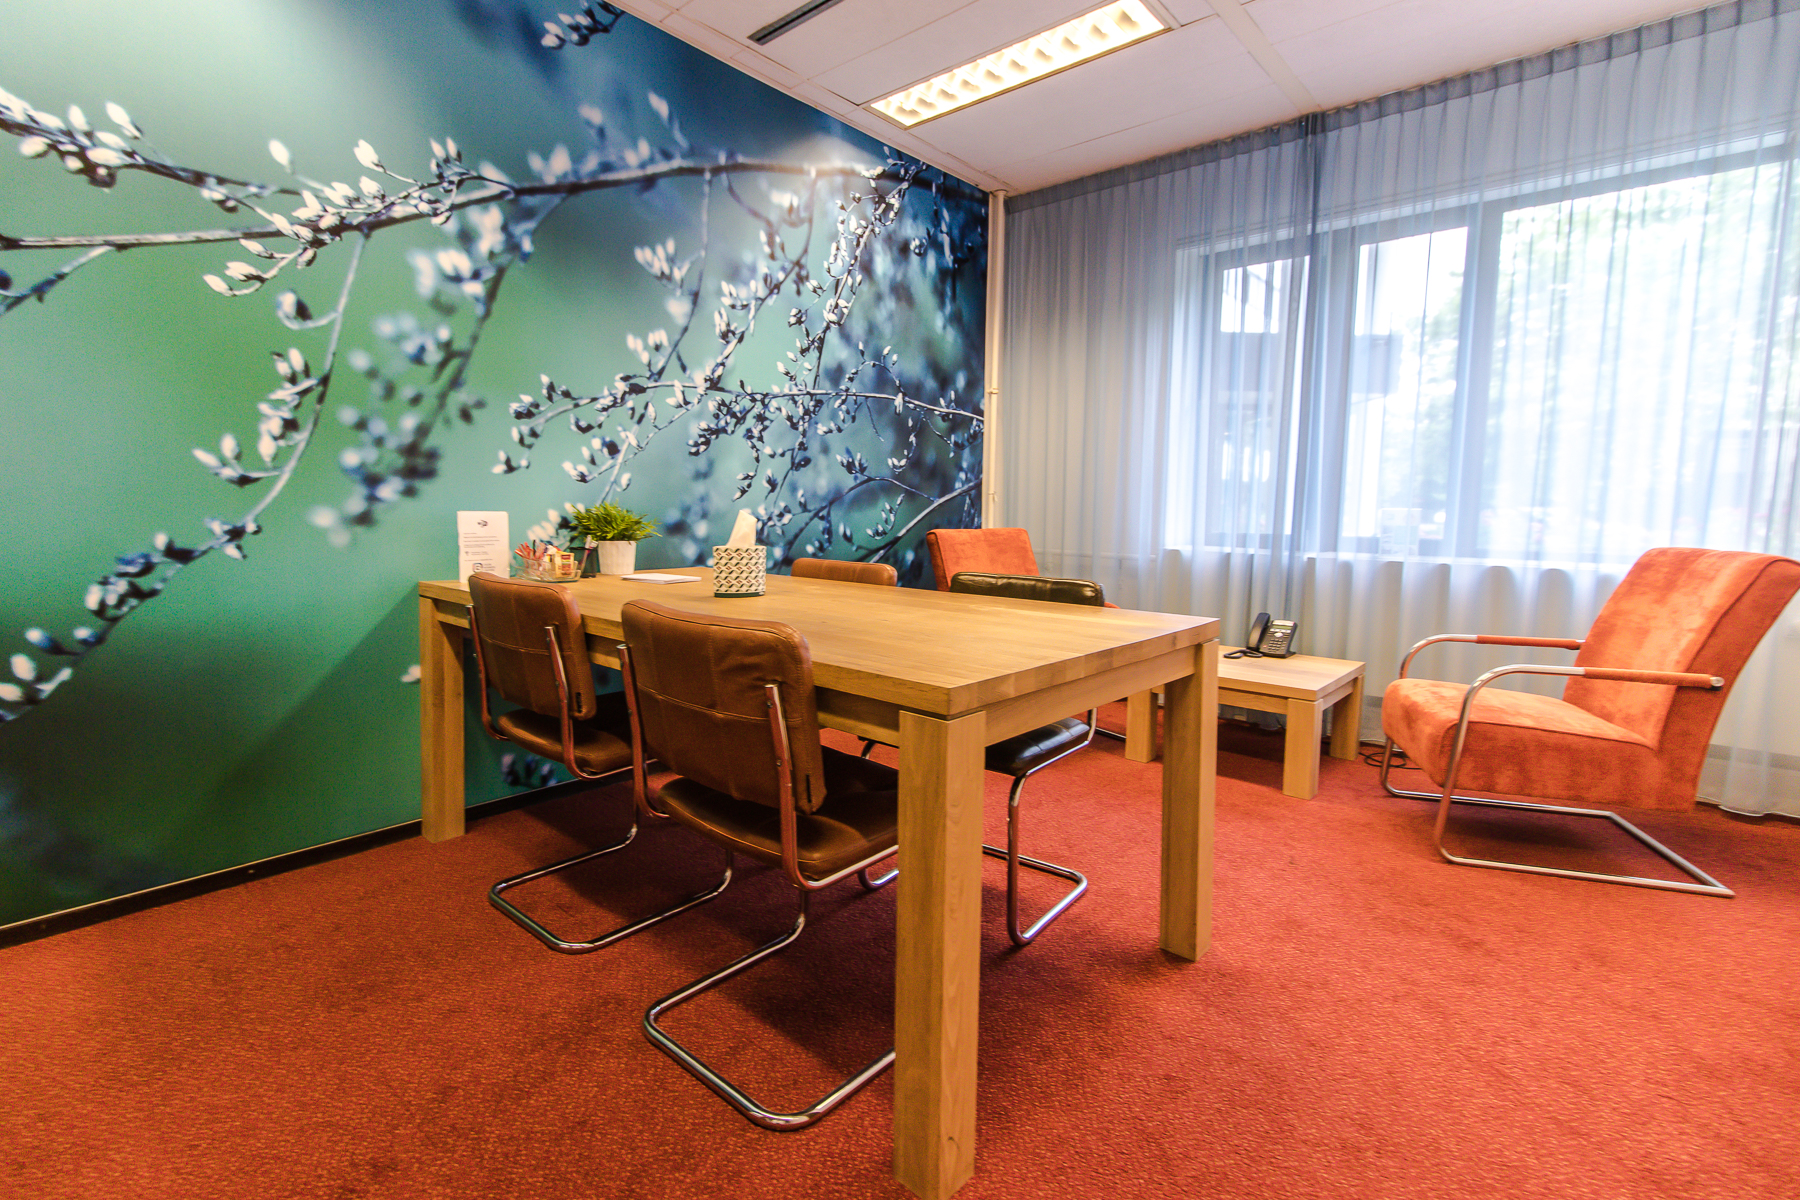 Multiple conference rooms throughout the building